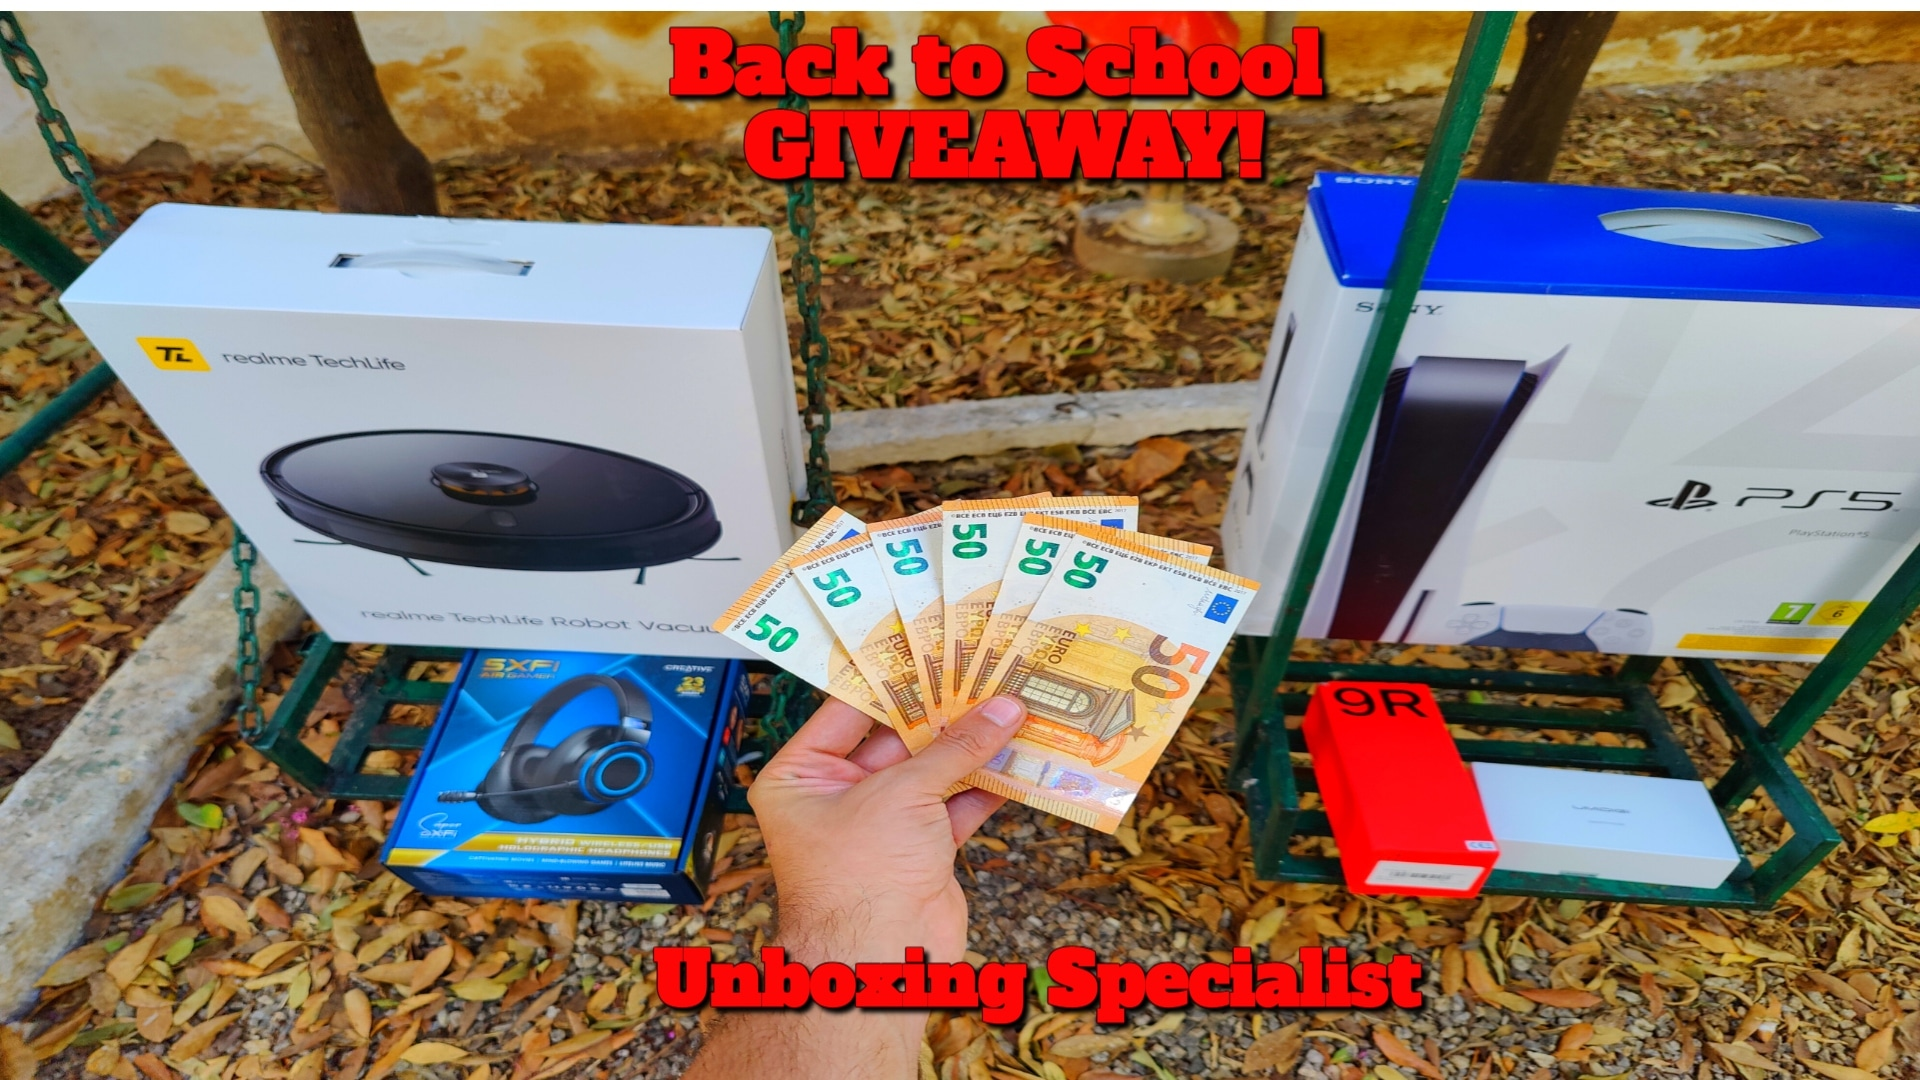 Playstation 5 + 2 Games, Oneplus 9R, Realme TechLife Robot Vacuum Cleaner, Umidigi Byson, Creative SXFI AIR GAMER and 50� Giveaway Image